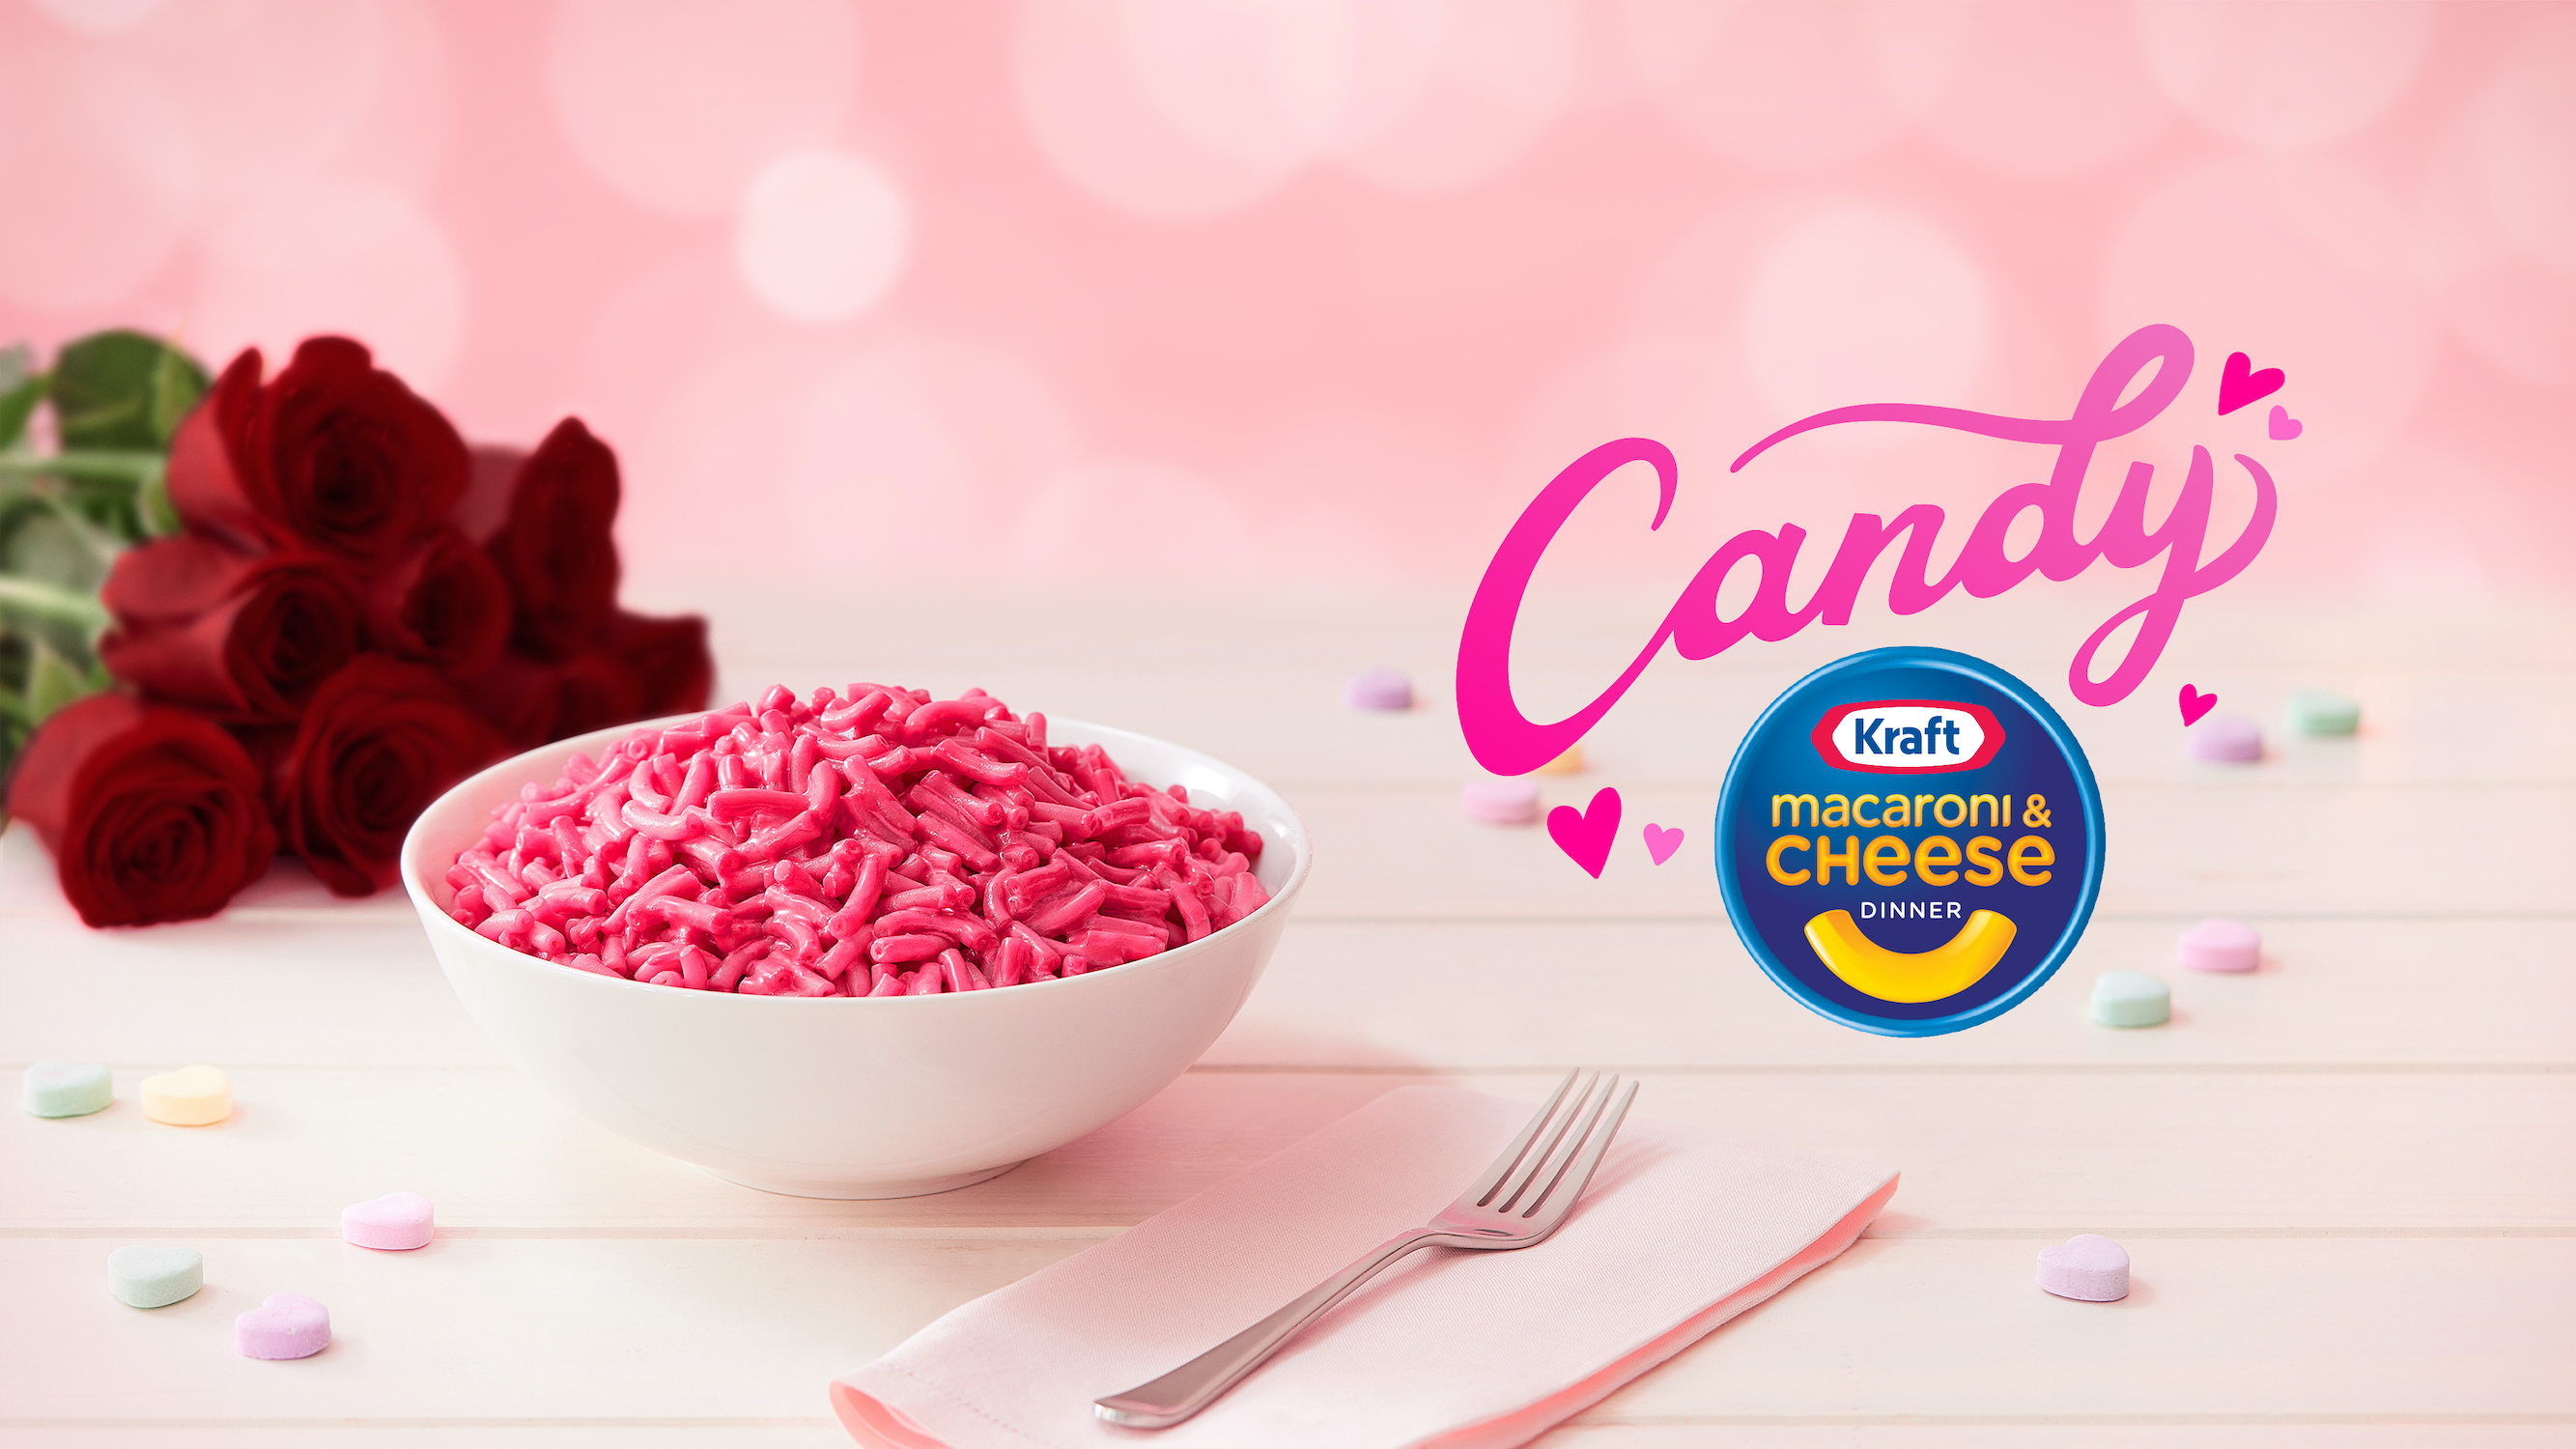 Kraft Making Hot Pink Mac & Cheese for Valentine's Day